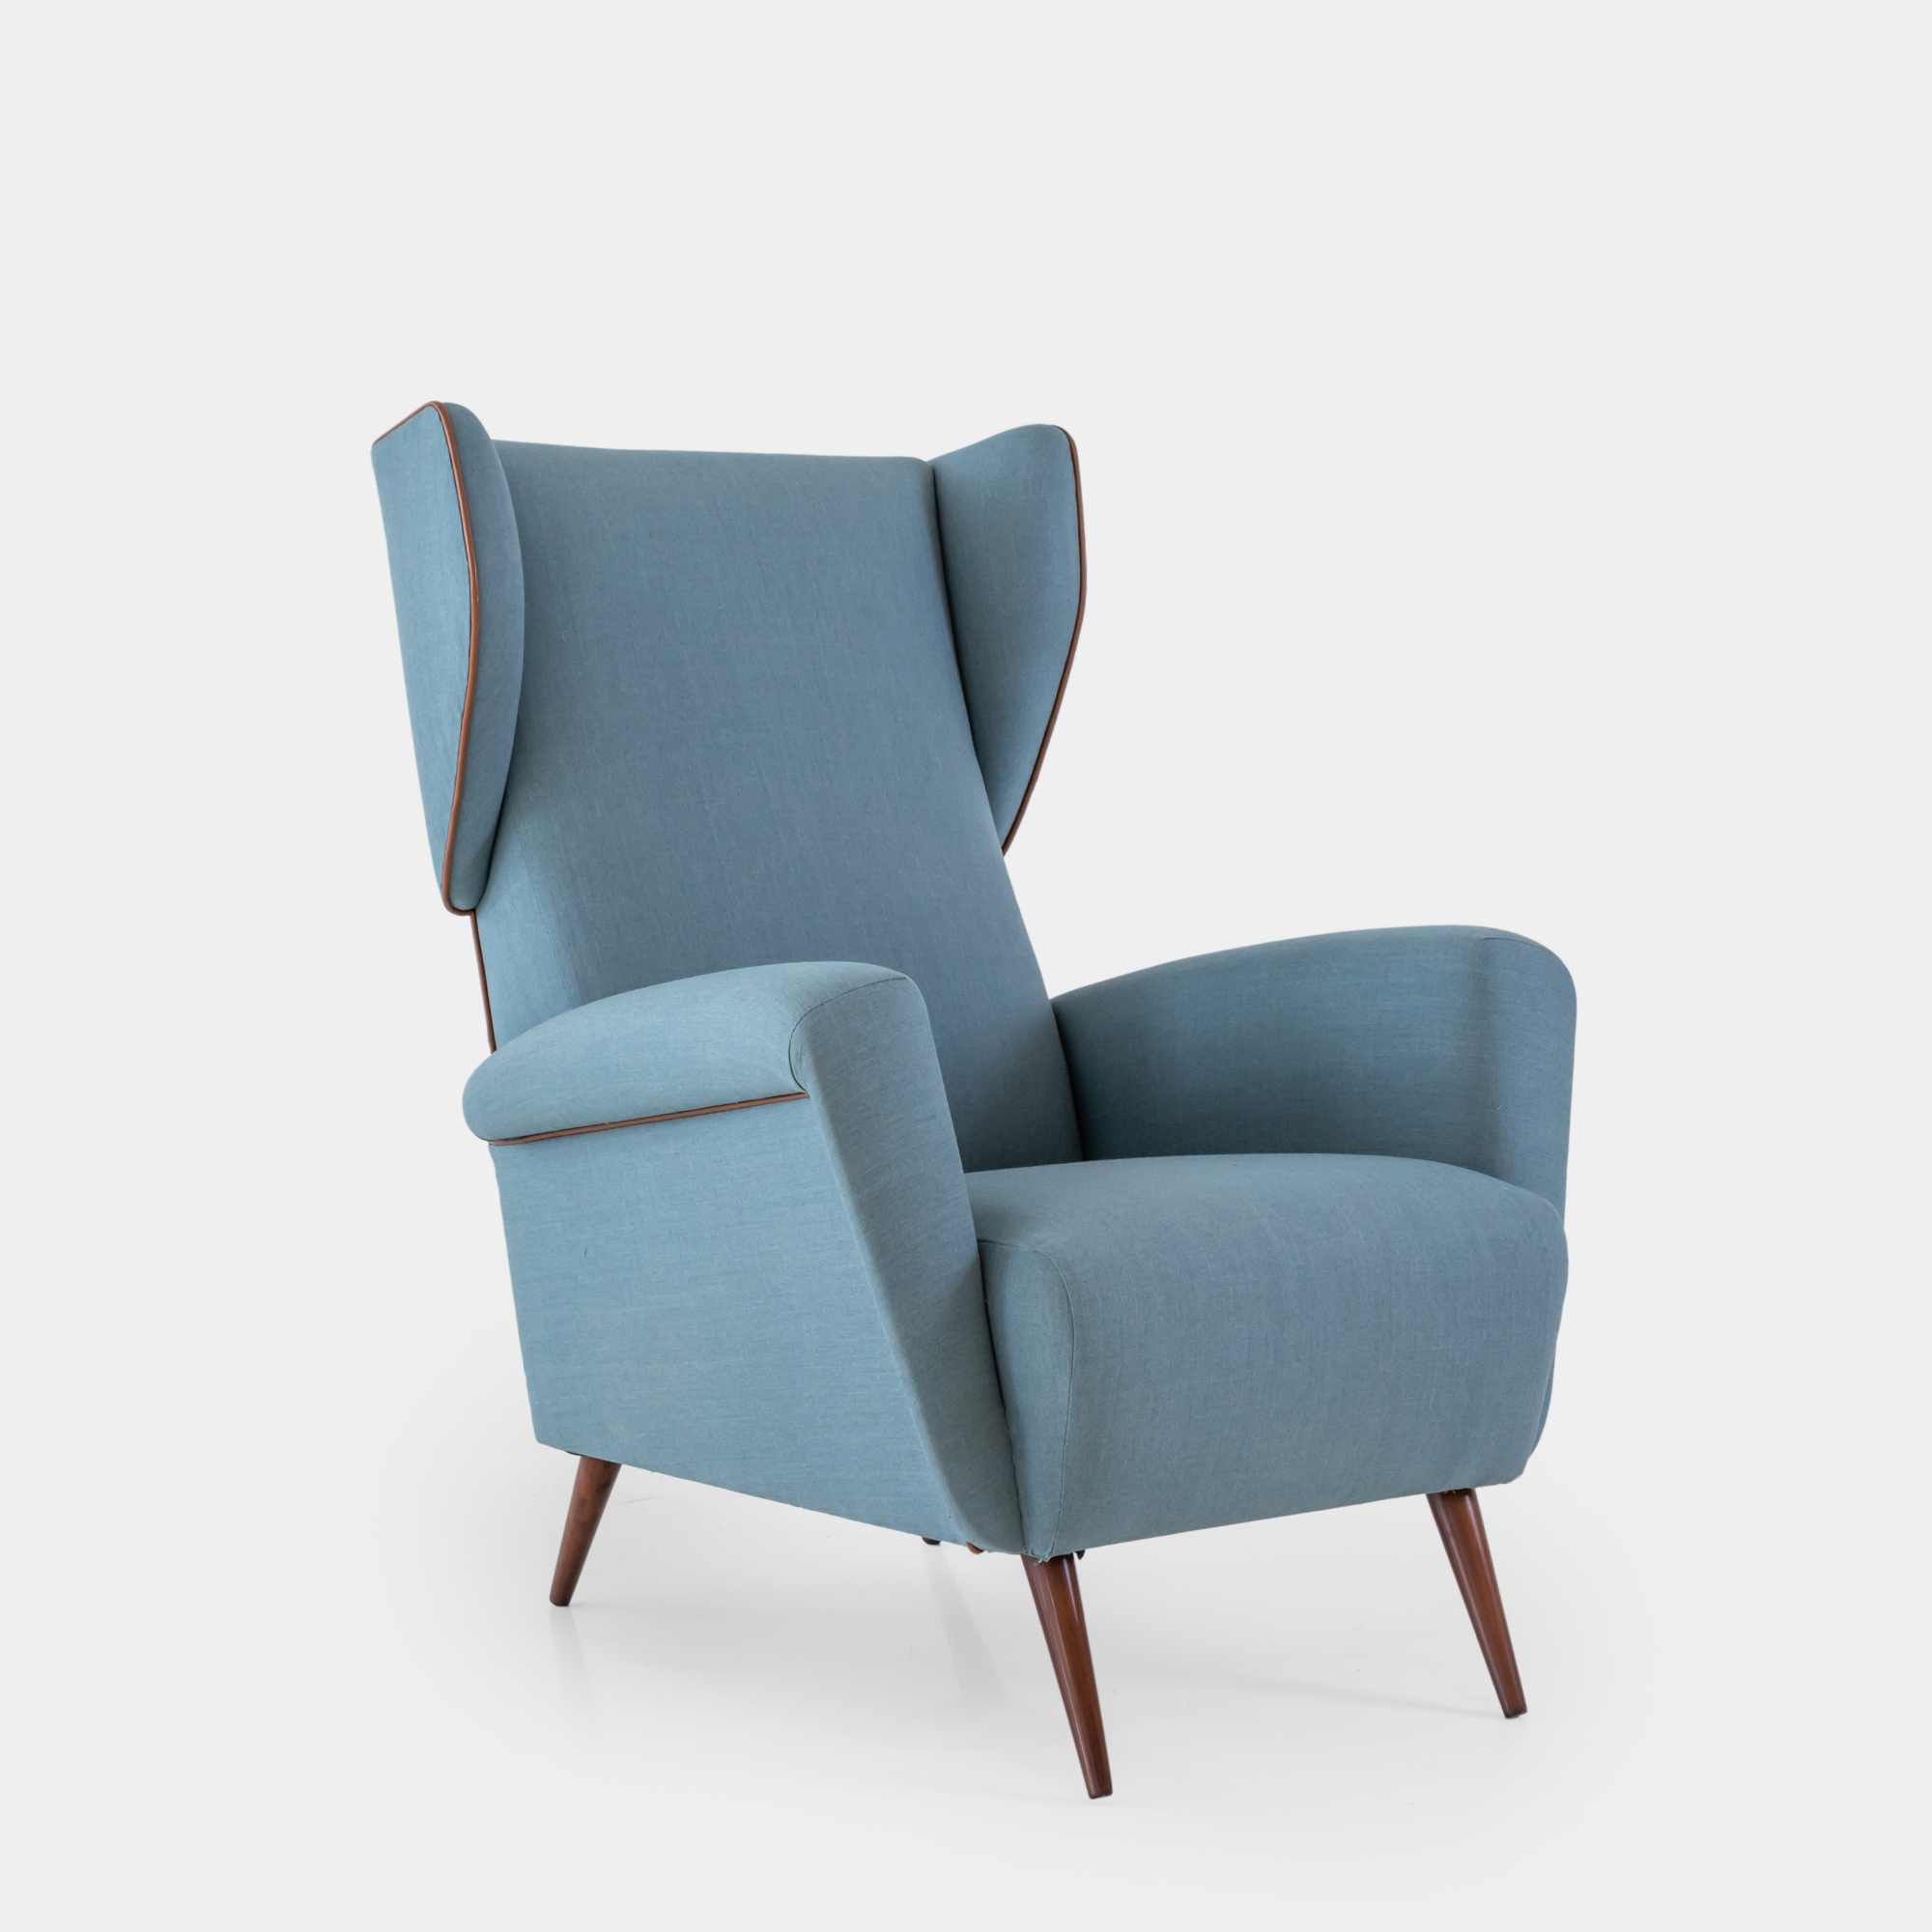 Armchair or Wingback Chair by Gio Ponti for Cassina | soyun k.